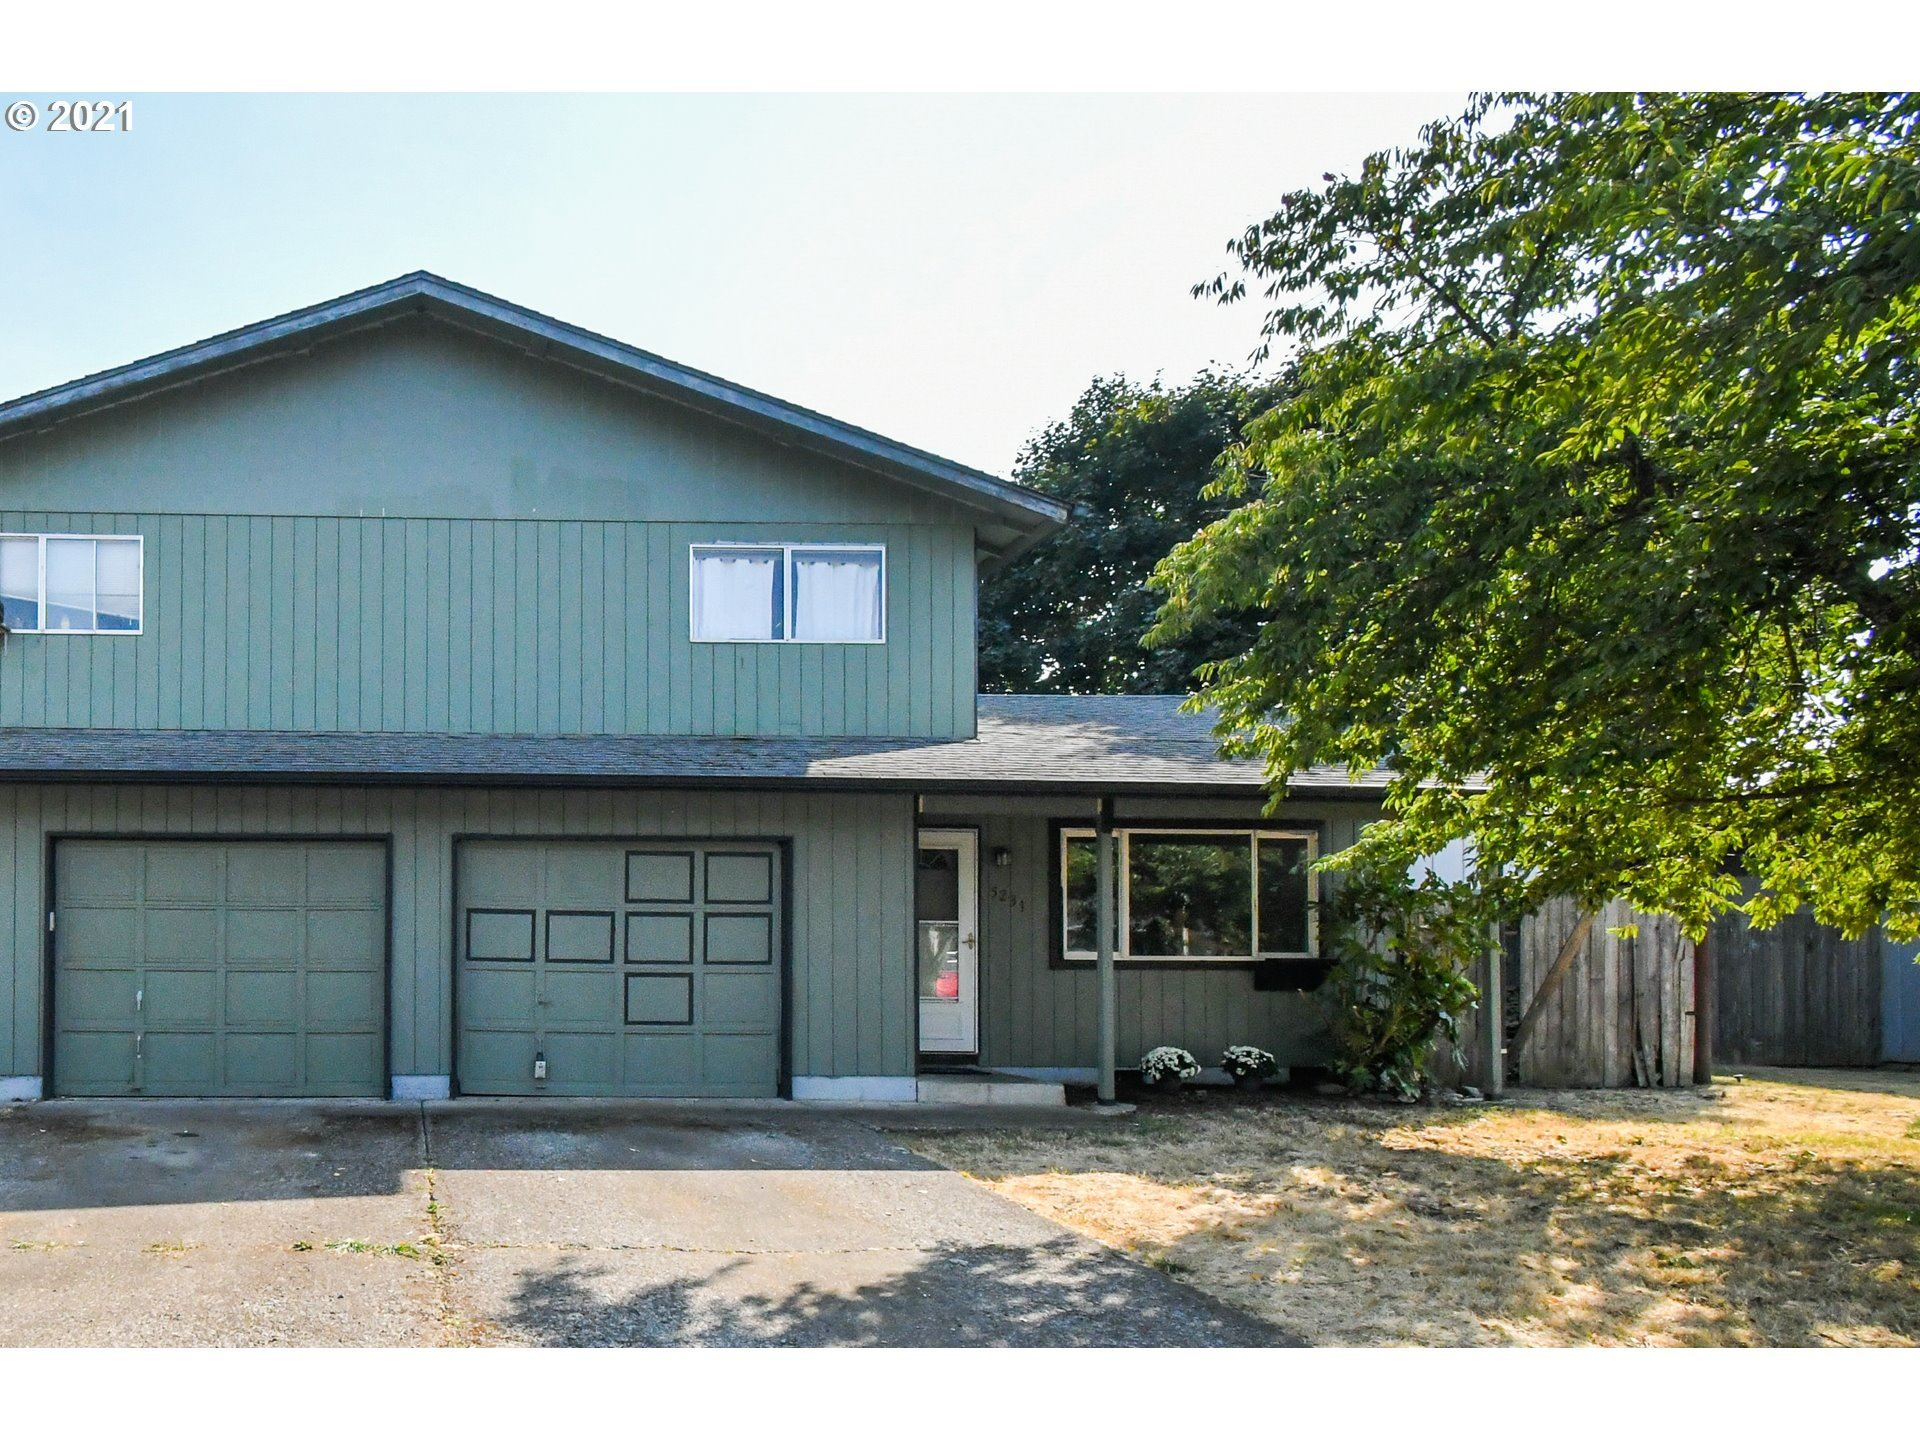 5231 G ST, Springfield, OR 97478 - MLS#: 21425249